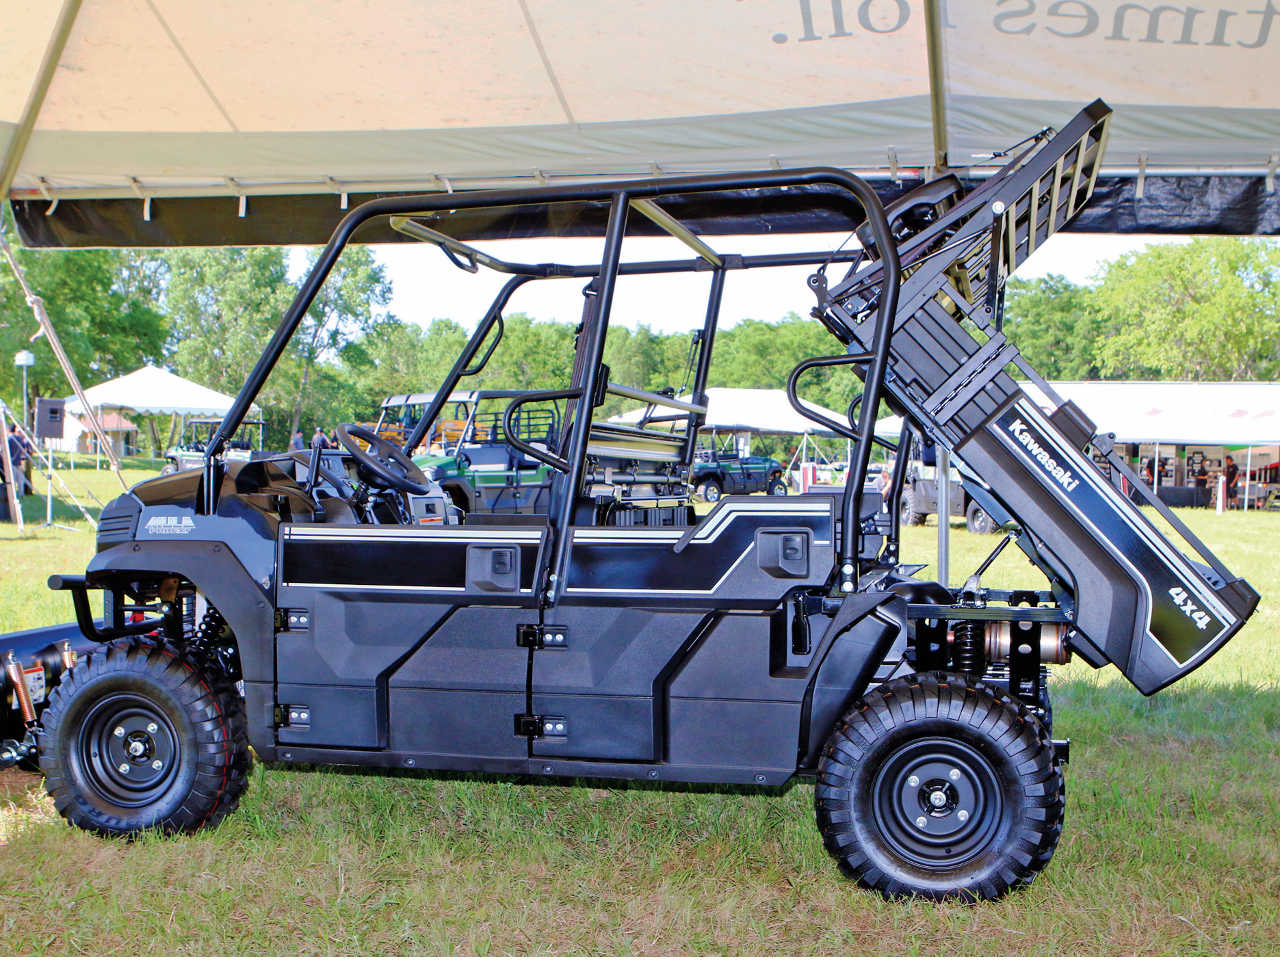 kawasaki mule 600 wiring diagram kawasaki mule side by